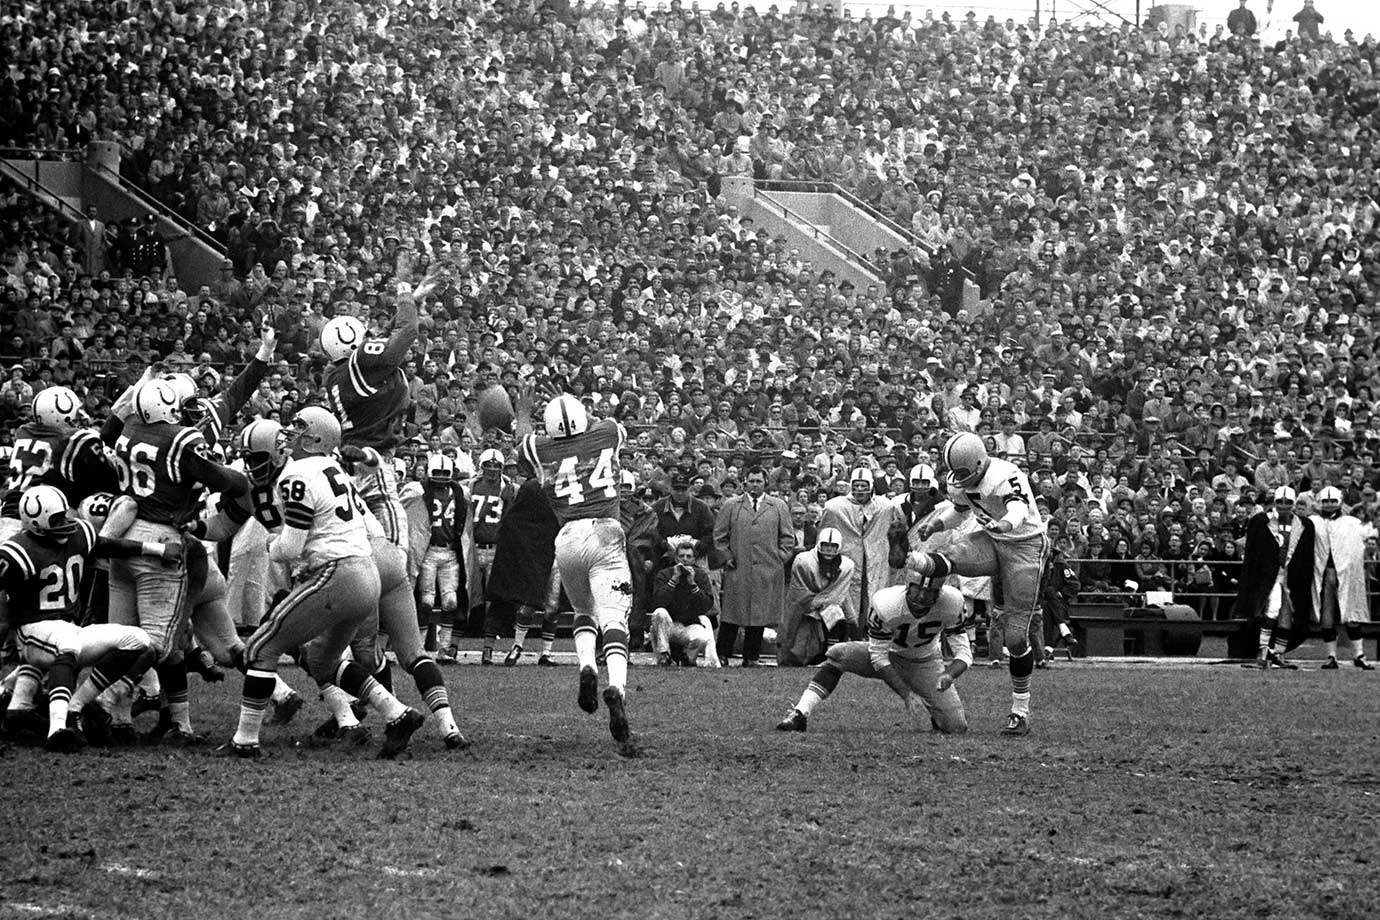 Nov. 6, 1960 — Green Bay Packers vs. Baltimore Colts